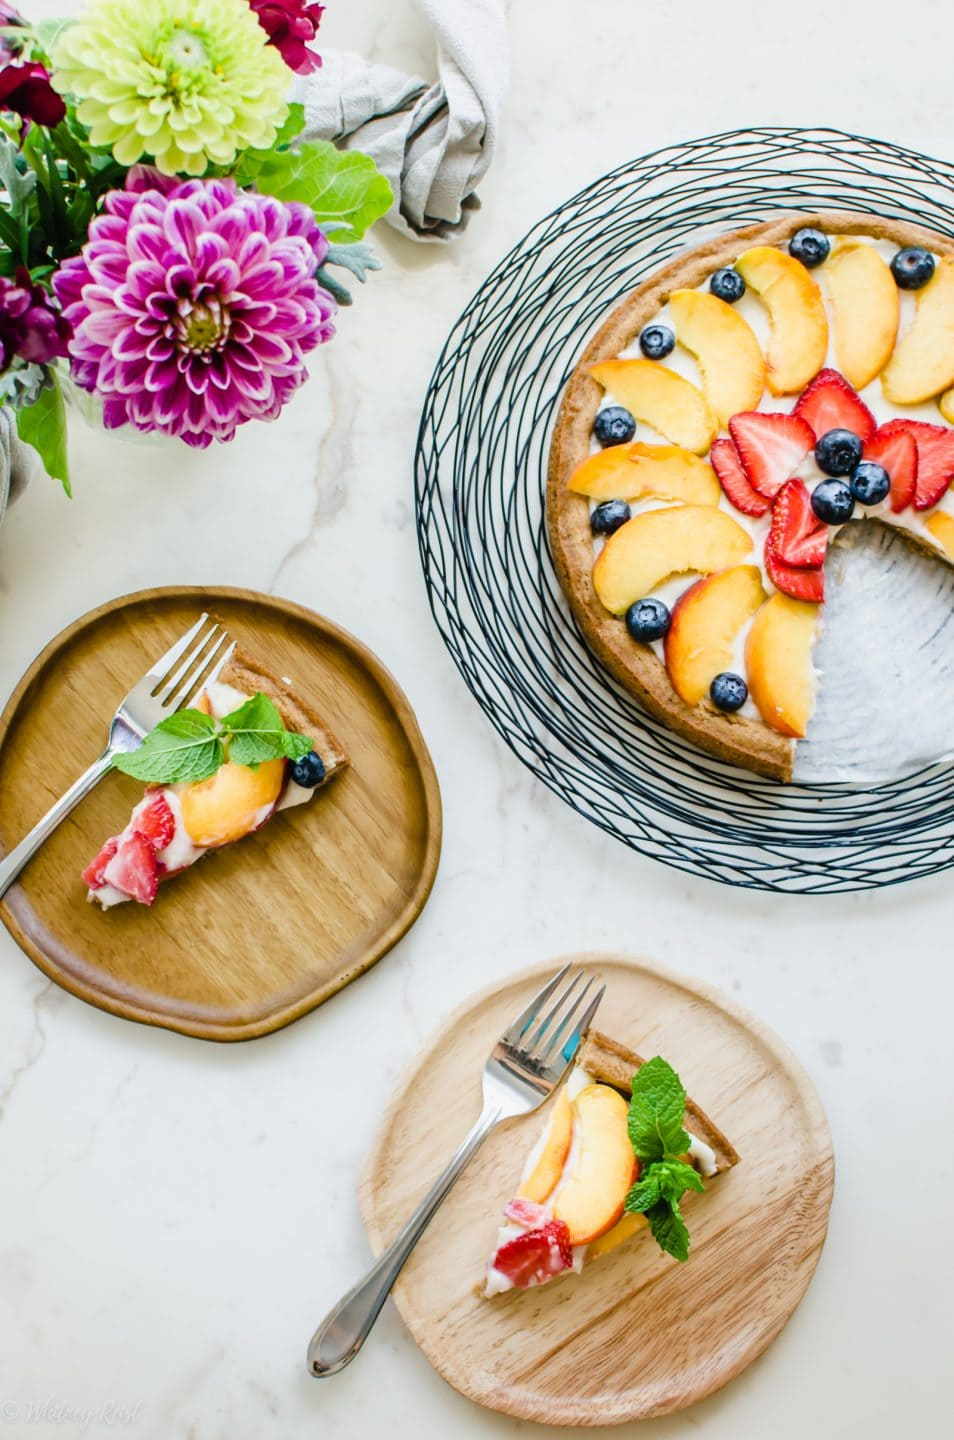 An overhead shot of two wooden plates of fruit pizza with forks and a vase of flowers.